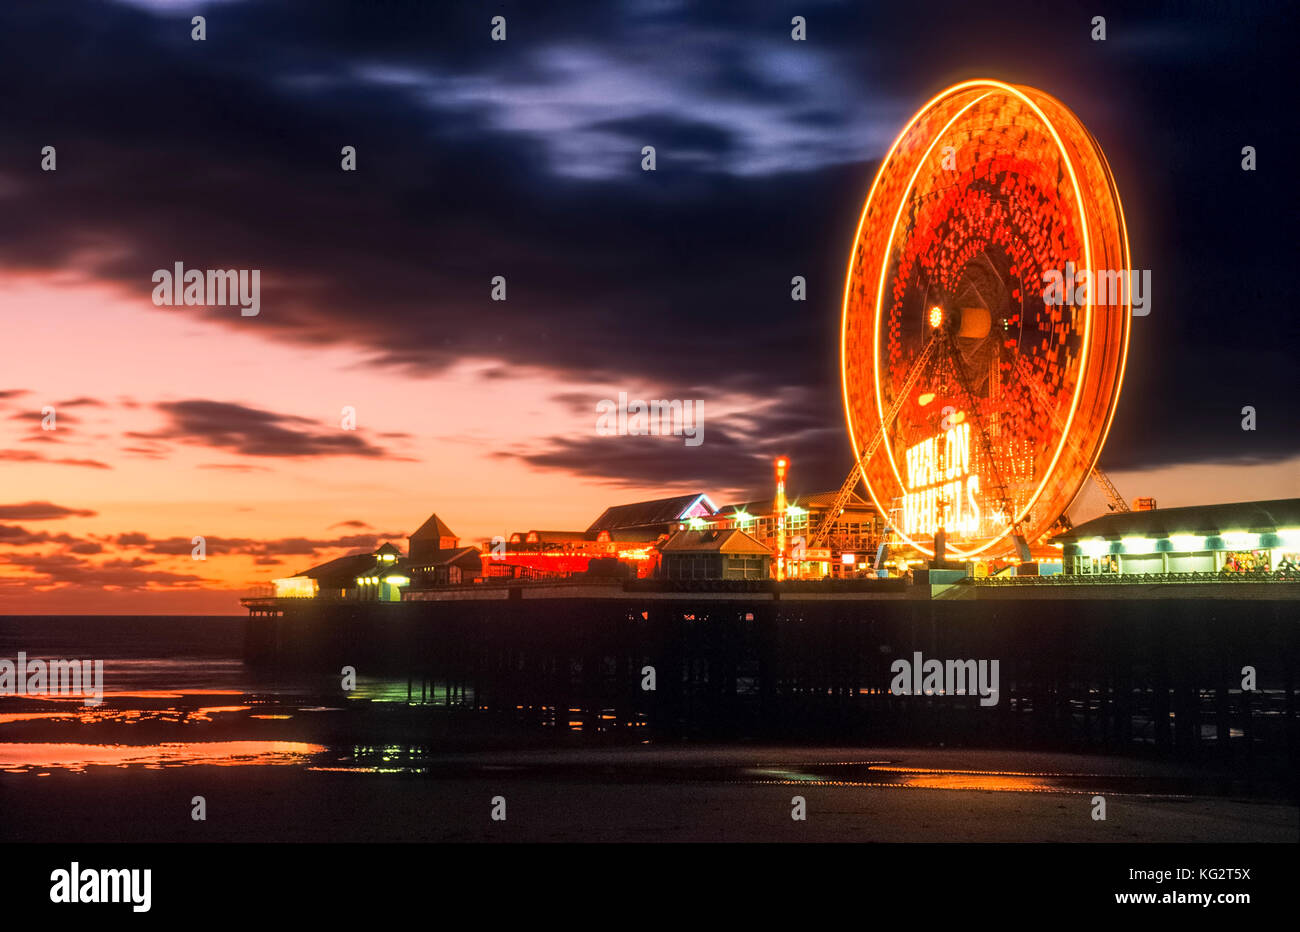 Ferris wheel on the Central Pier at Blackpool at sunset - Stock Image